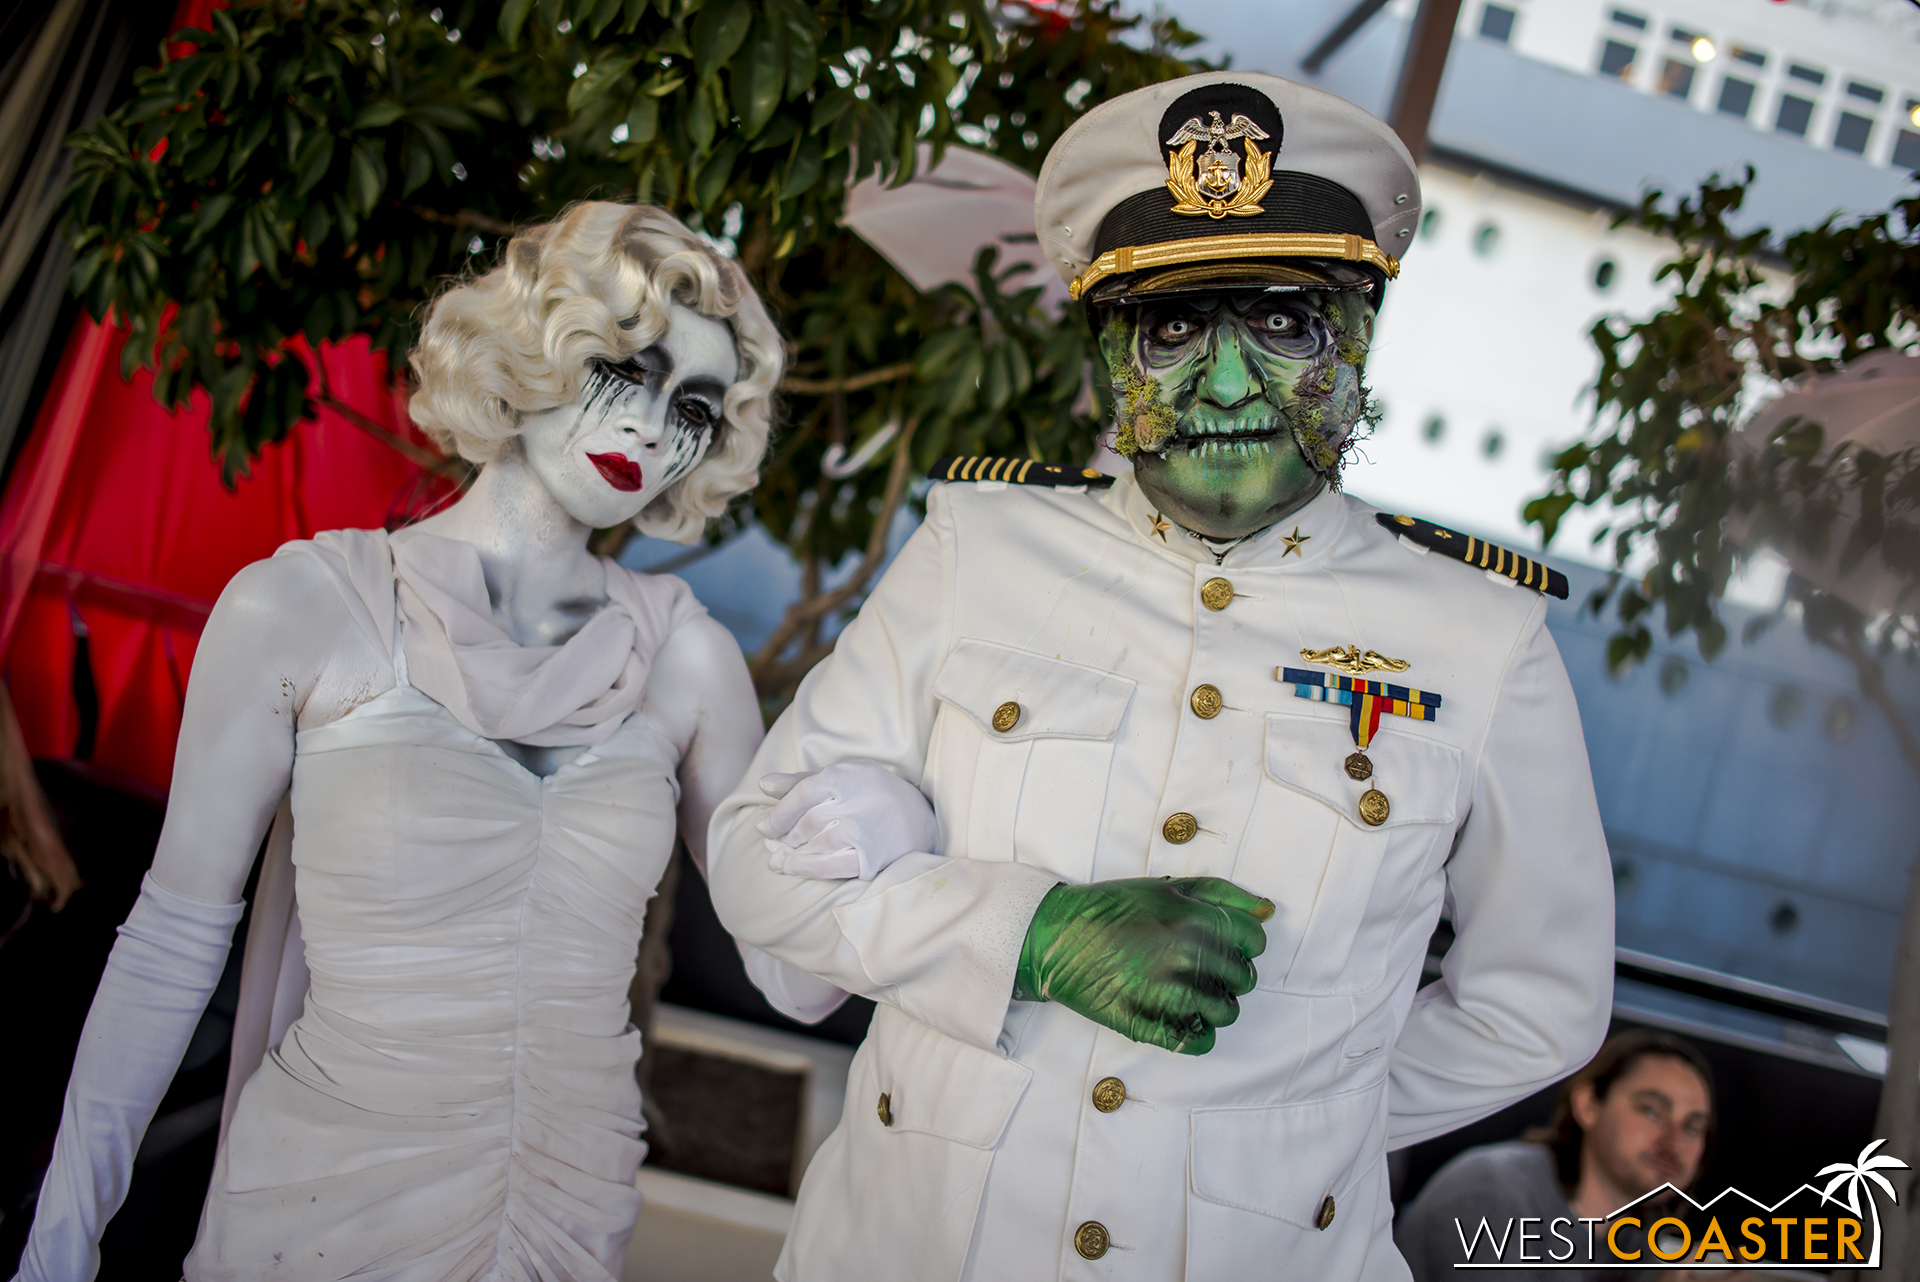 Graceful Gale and The Captain greet guests at last year's Dark Harbor opening night.